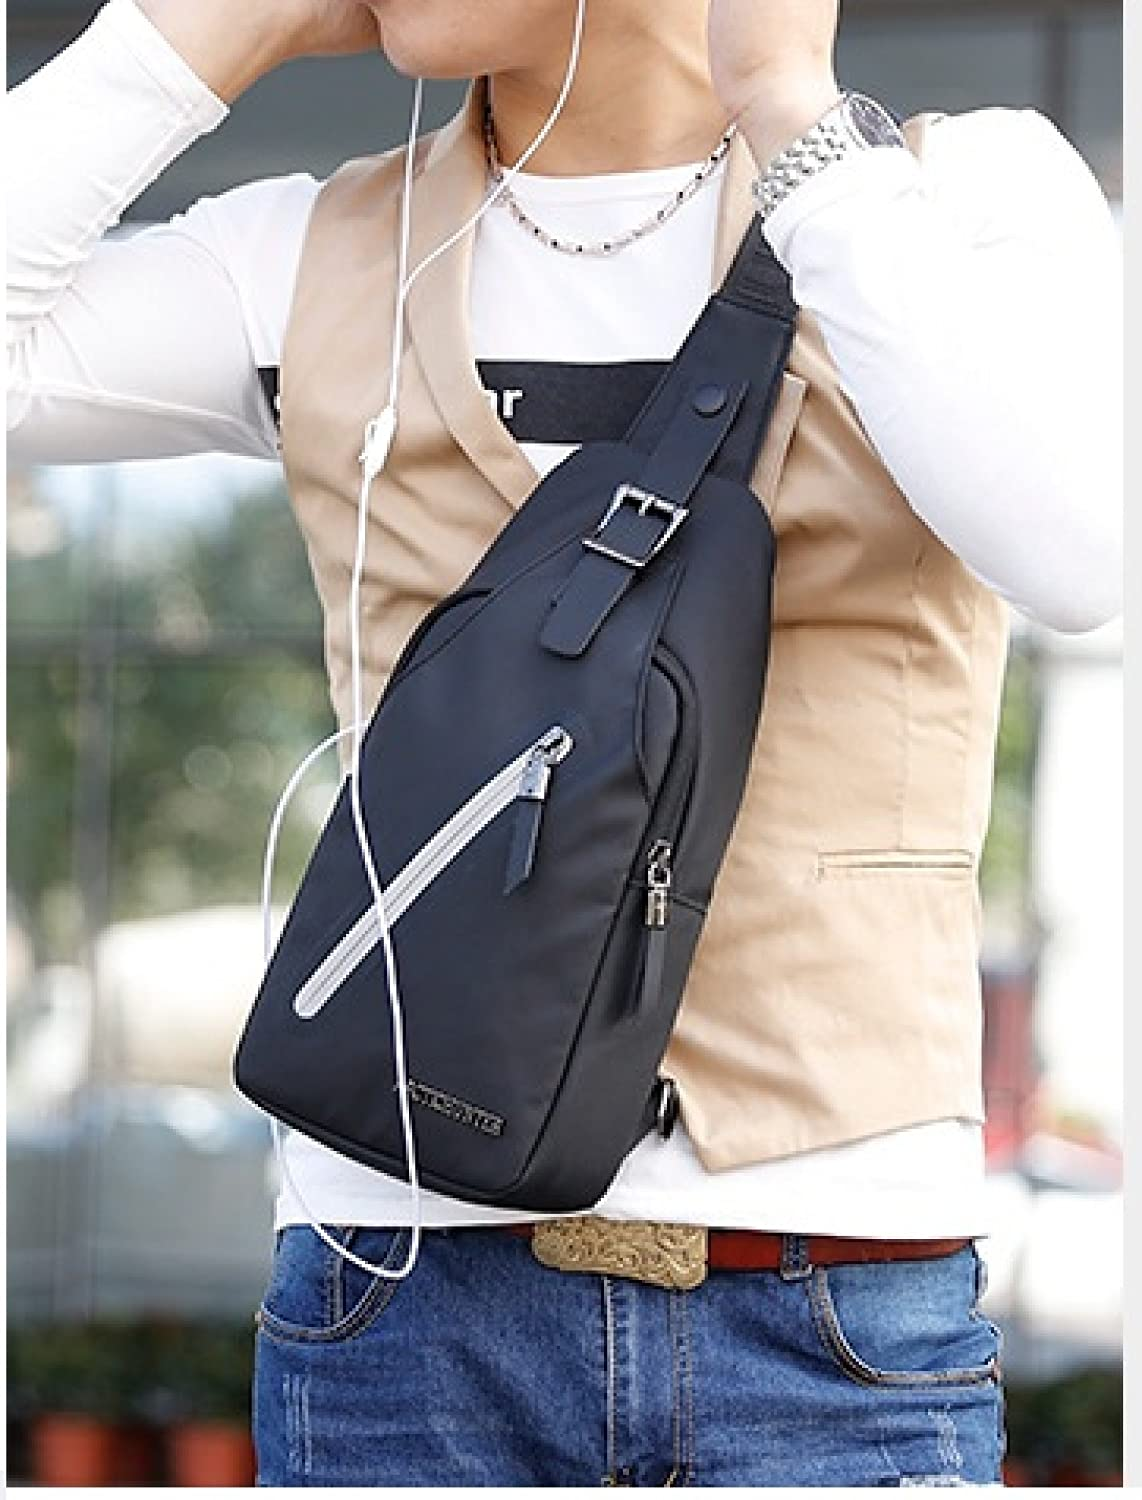 NaSUMTUO Mens Sling Bag Headphone Port Waterproof Crossbody Shoulder Bag Outdoor Cycling Messenger Chest Bag Black